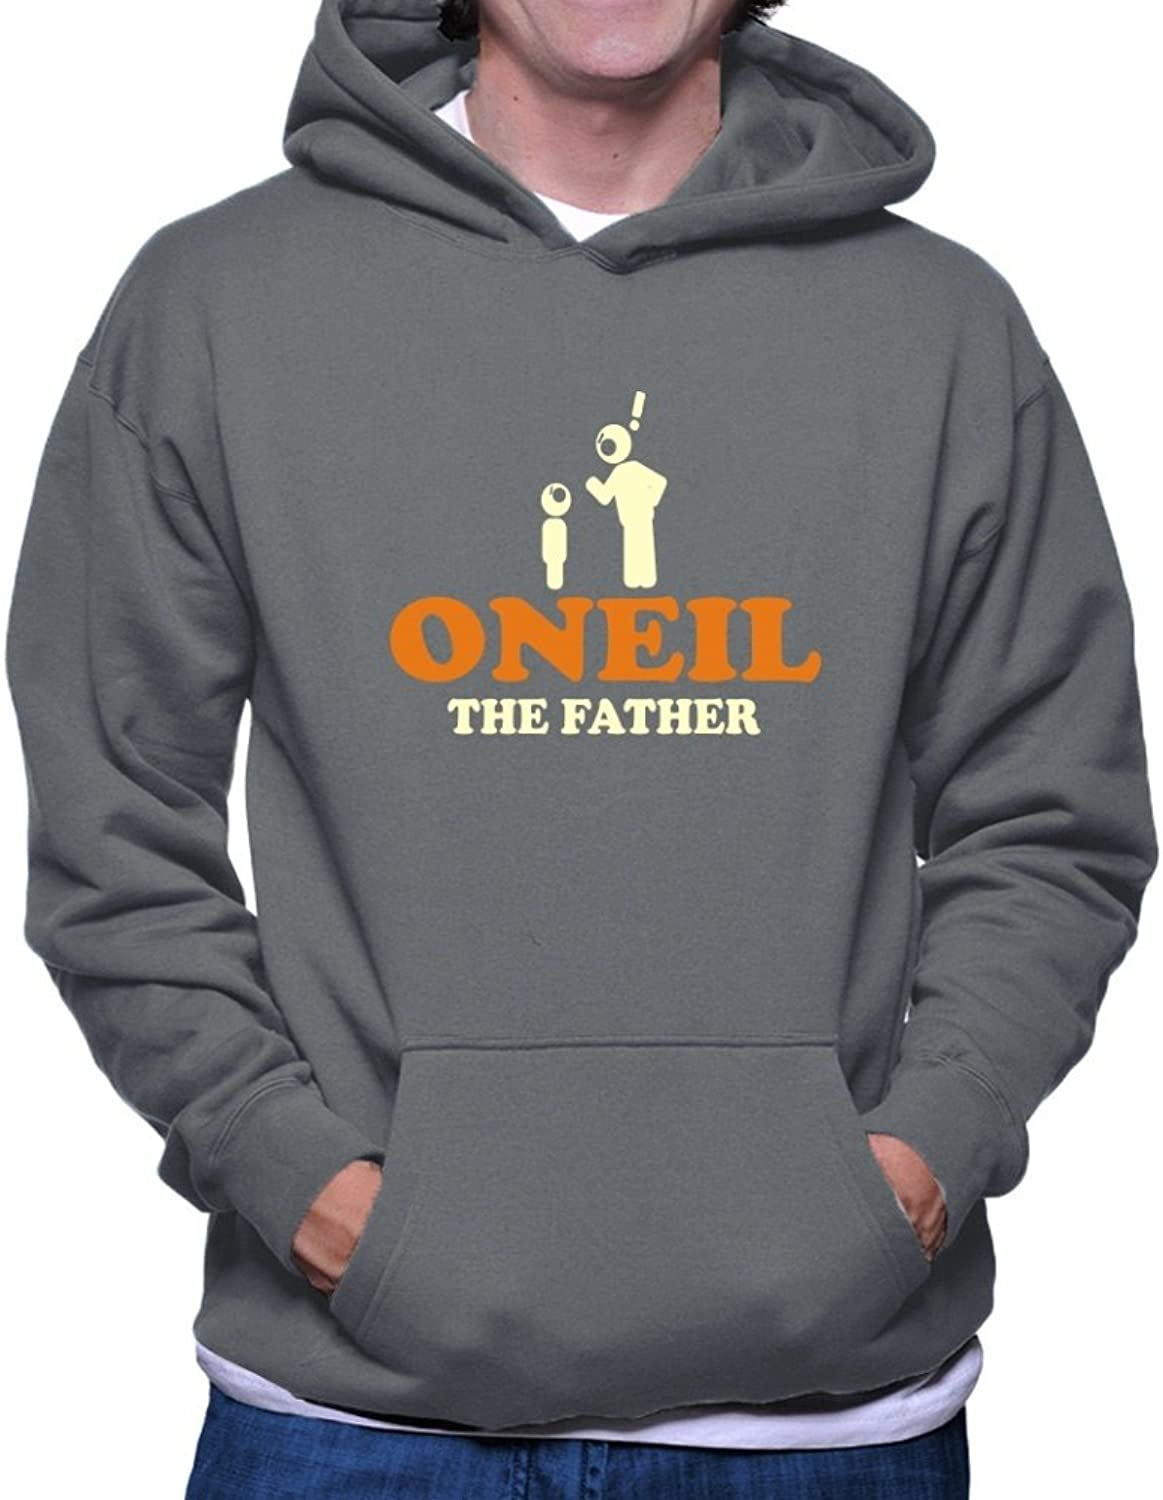 Teeburon Oneil the father Hoodie